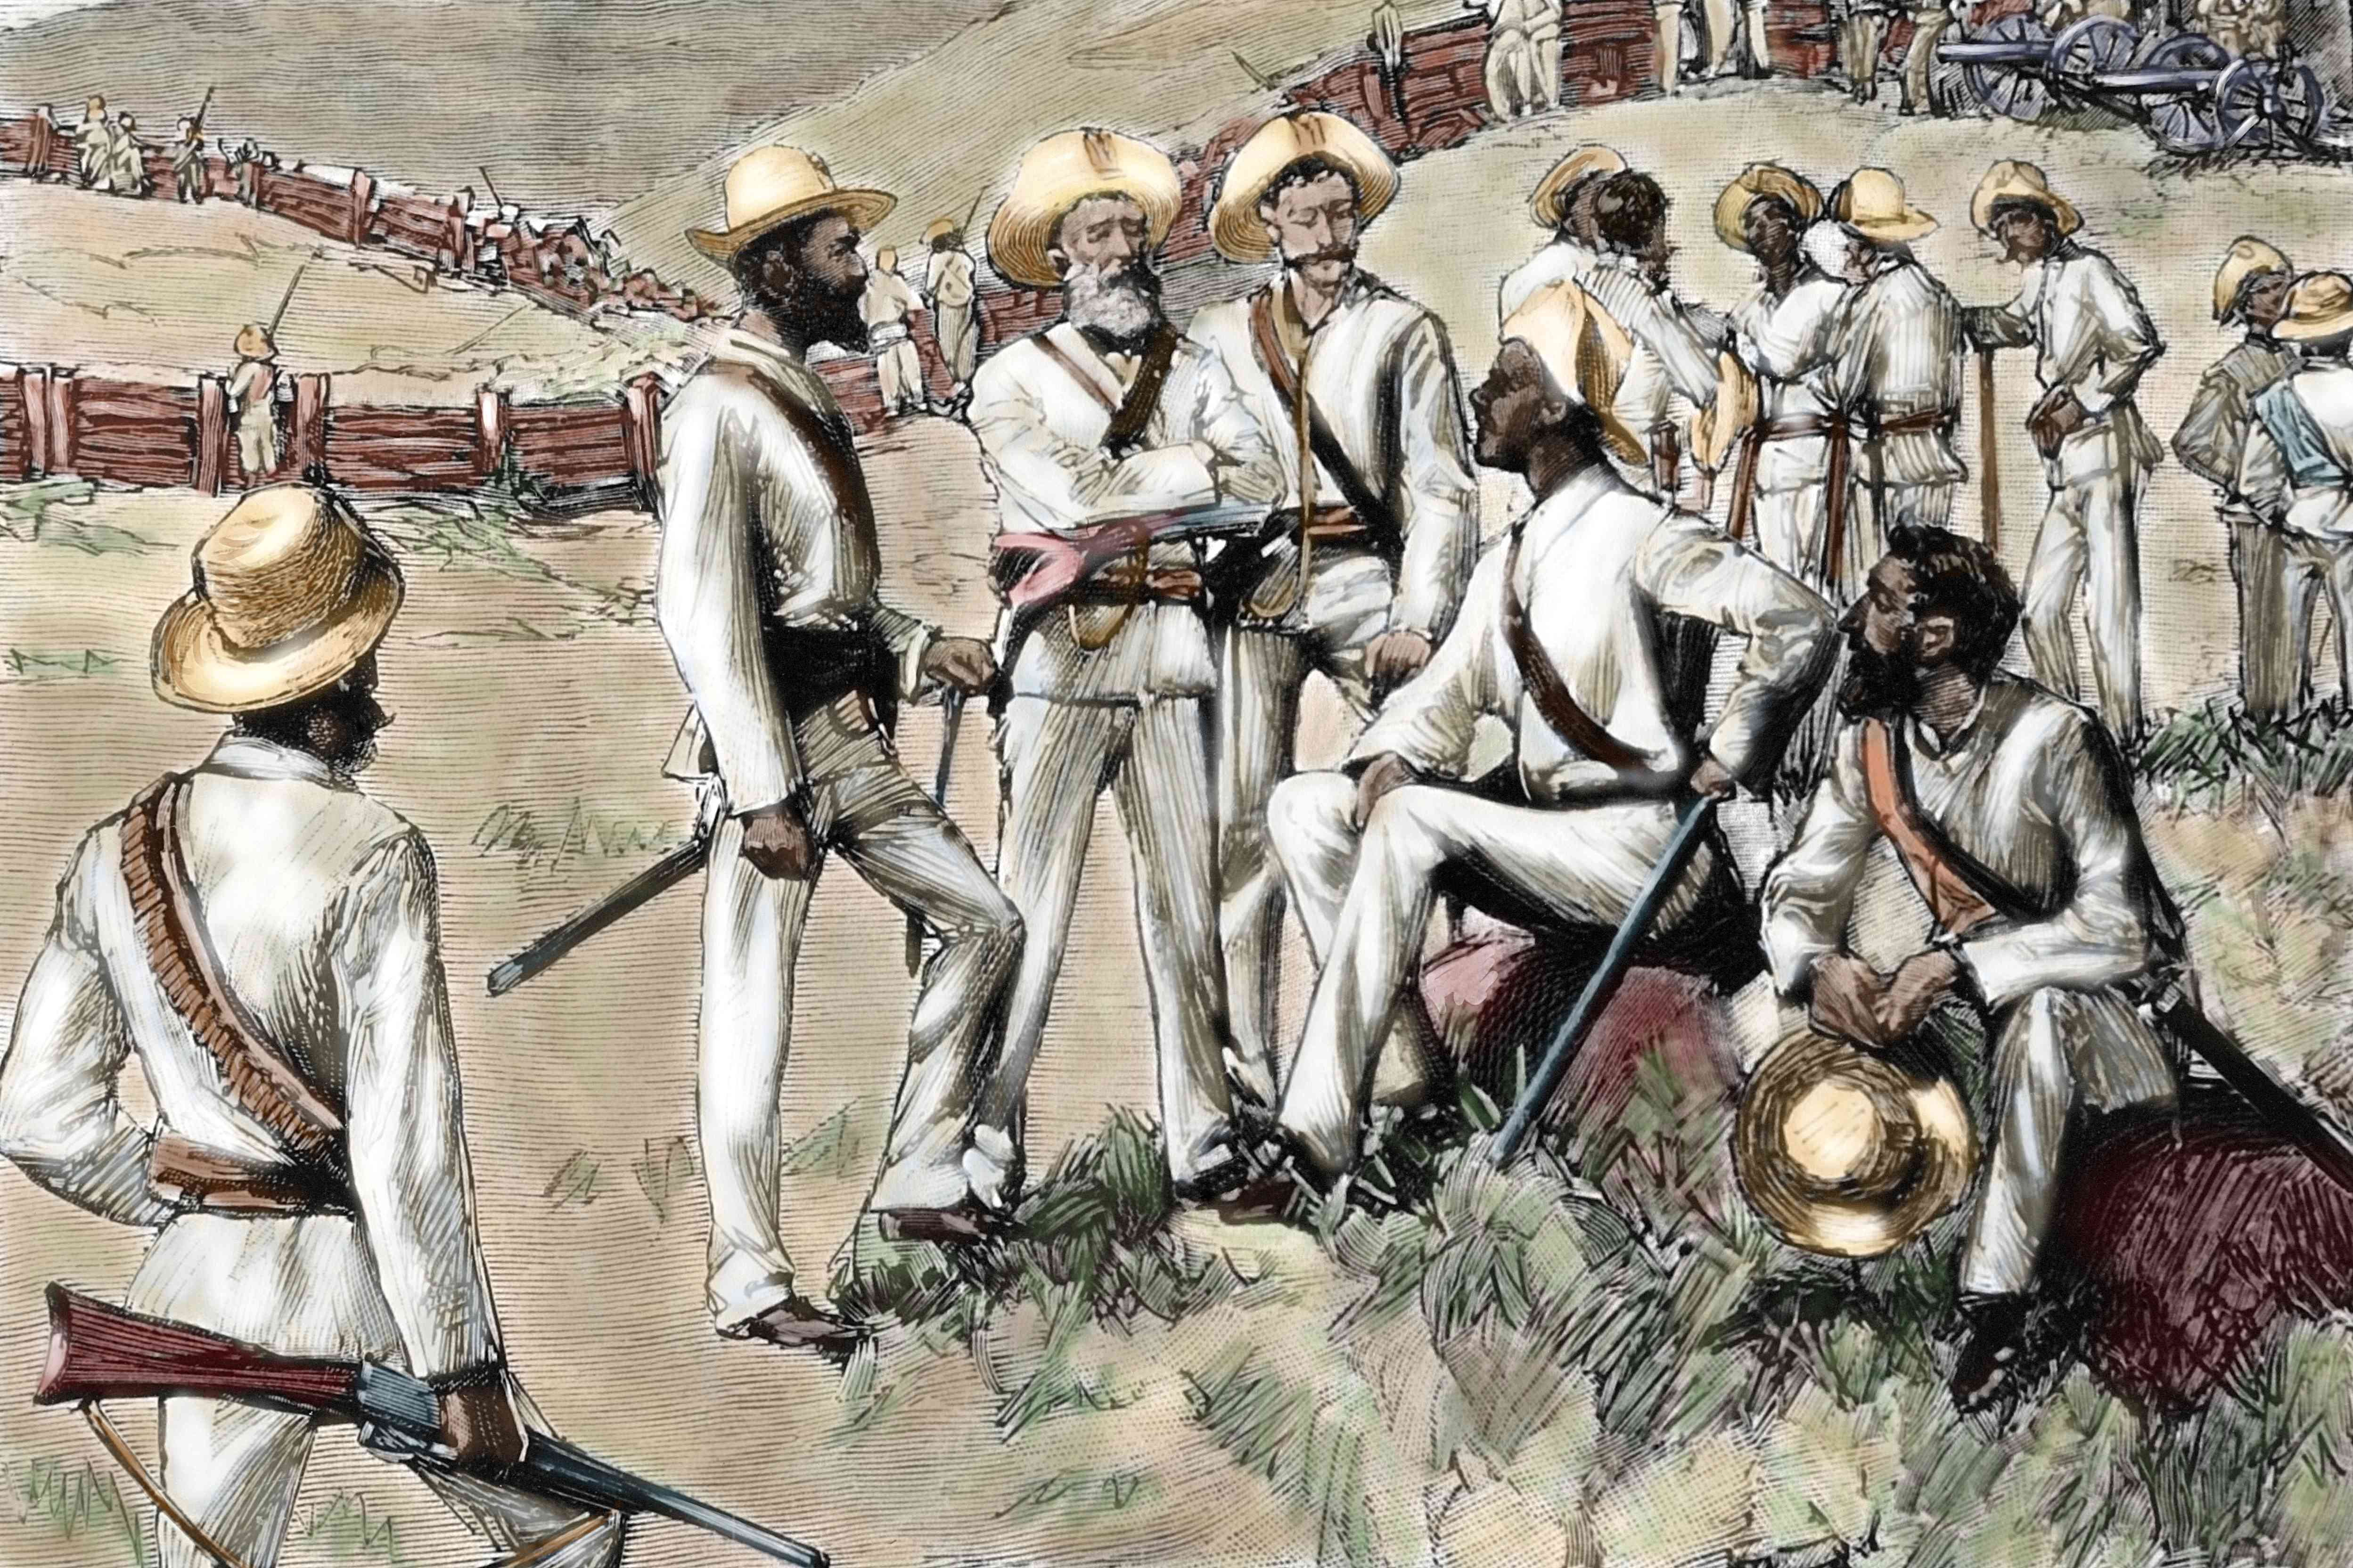 Cuban rebels in the War of Independence